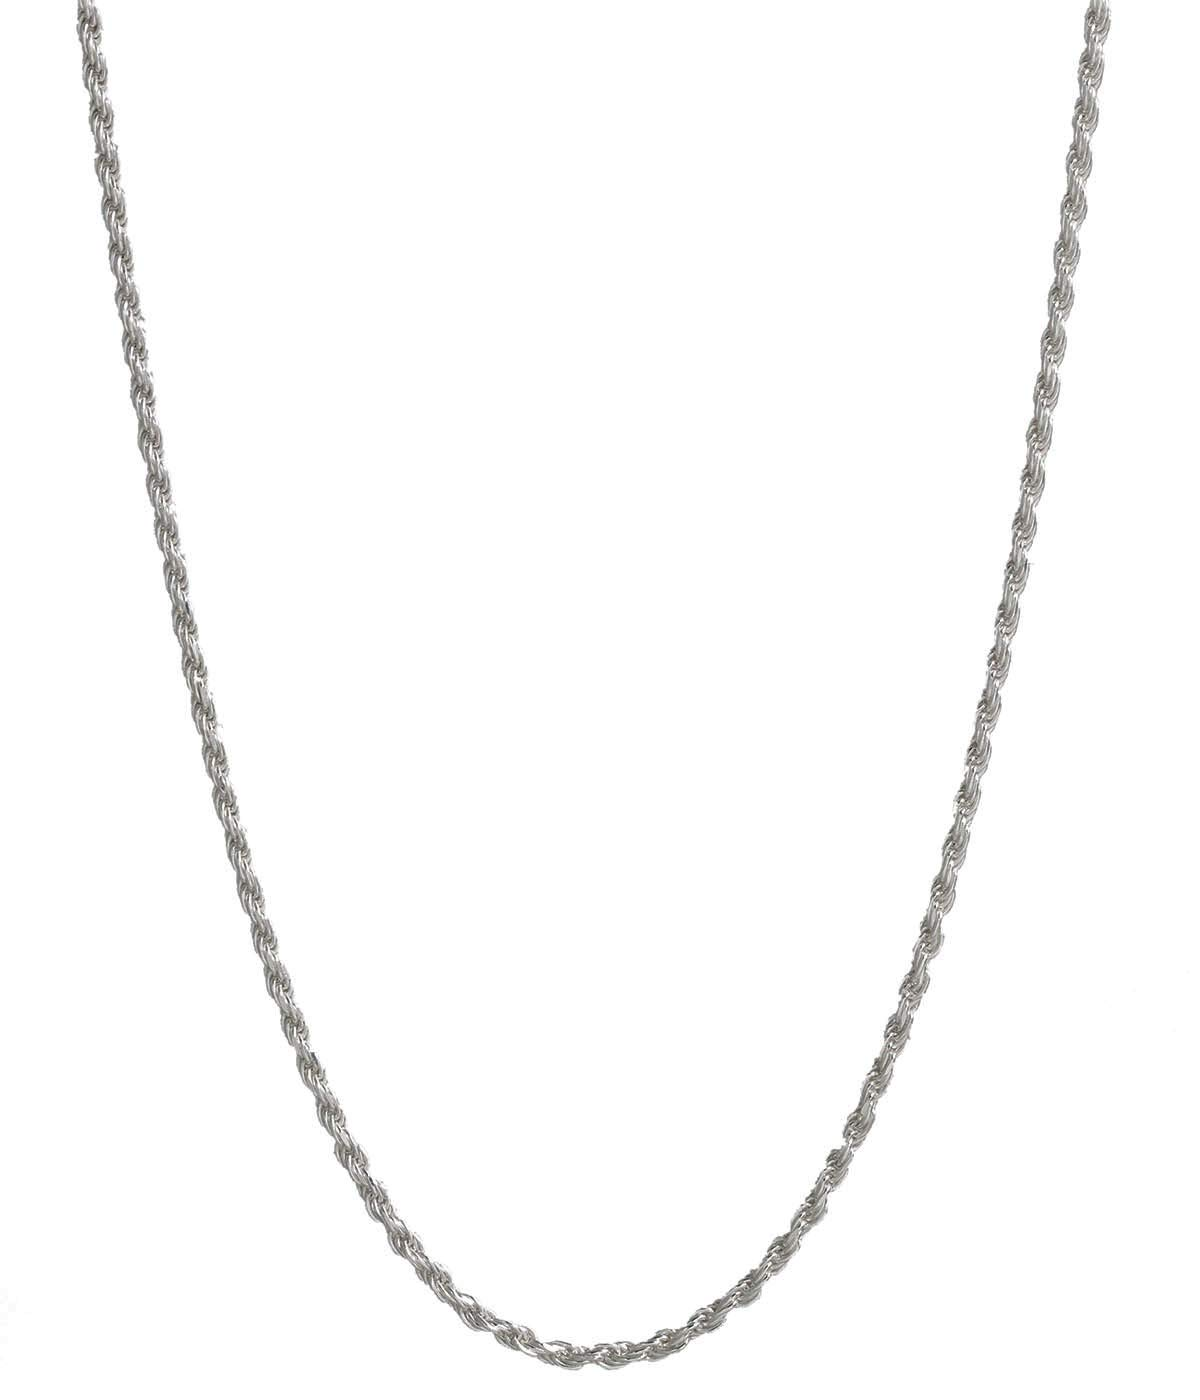 Pori Jewelers Platinum 950 Solid Diamond Cut Rope Chain Necklace -2.0mm Thick (18)